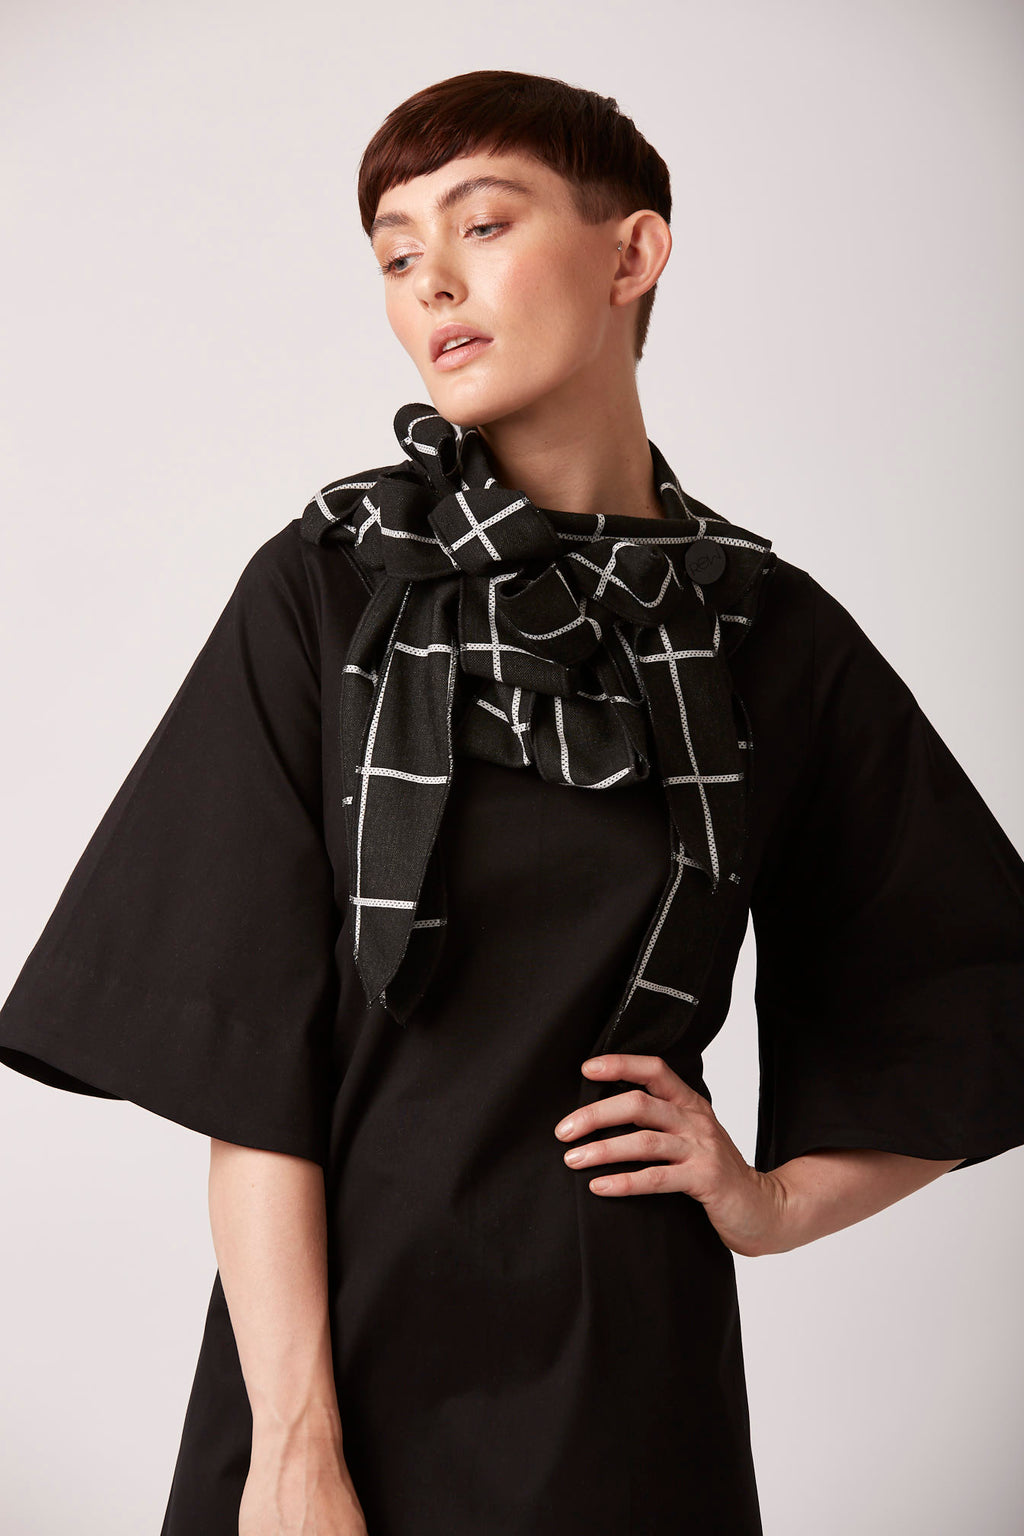 Grid patterned scarf by rew clothing